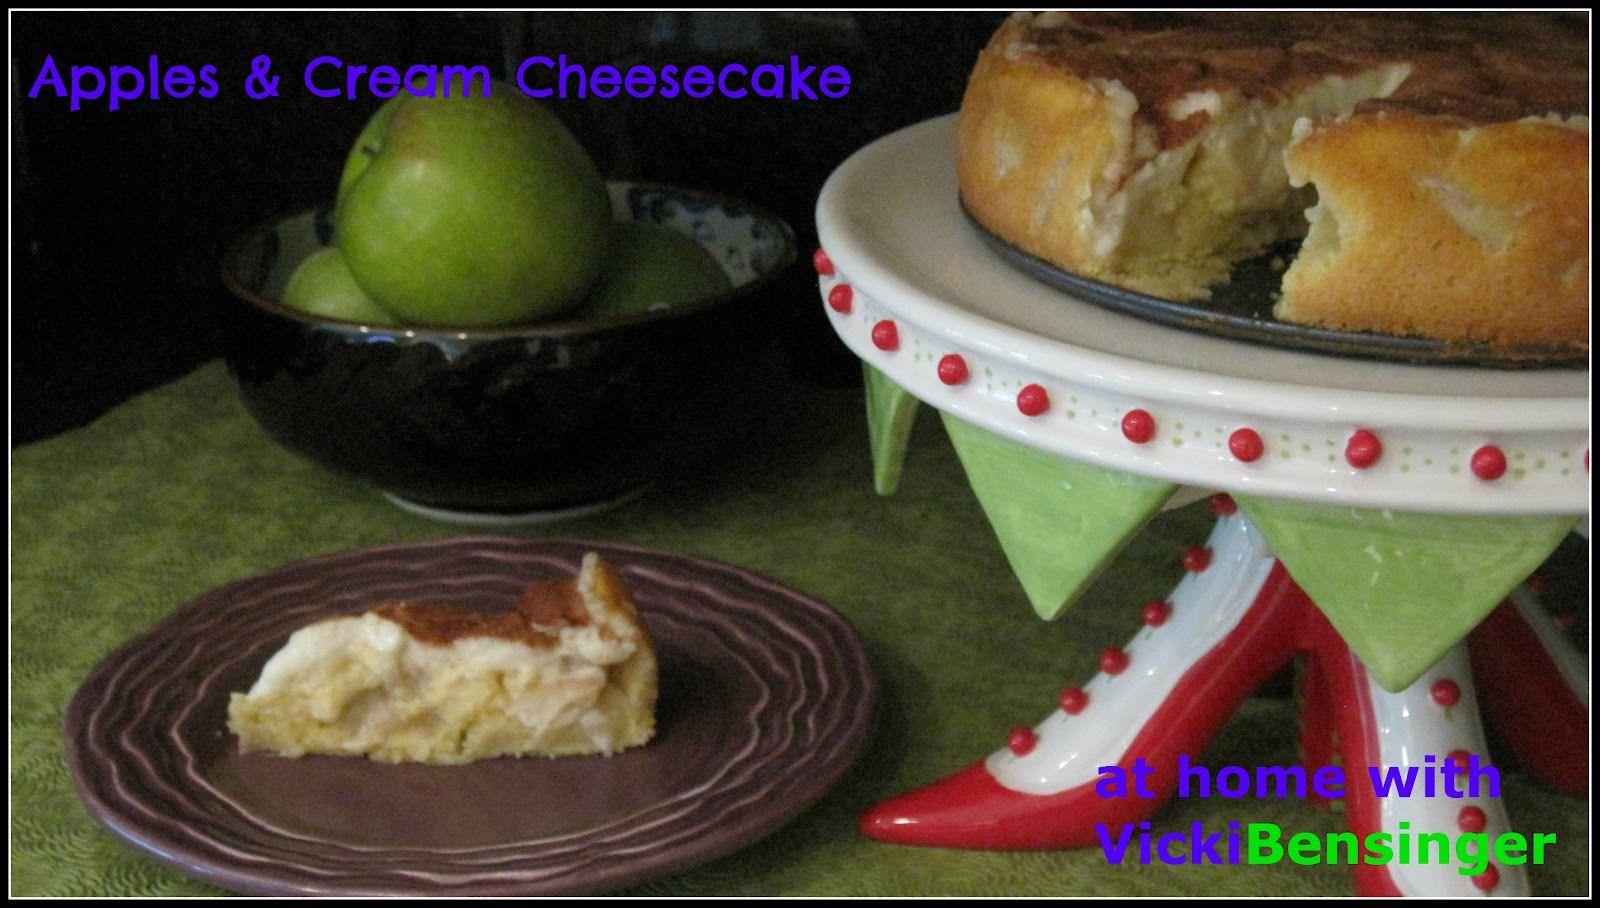 At Home with Vicki Bensinger, In-Home Culinary Classes: Apples & Cream Cheesecake!